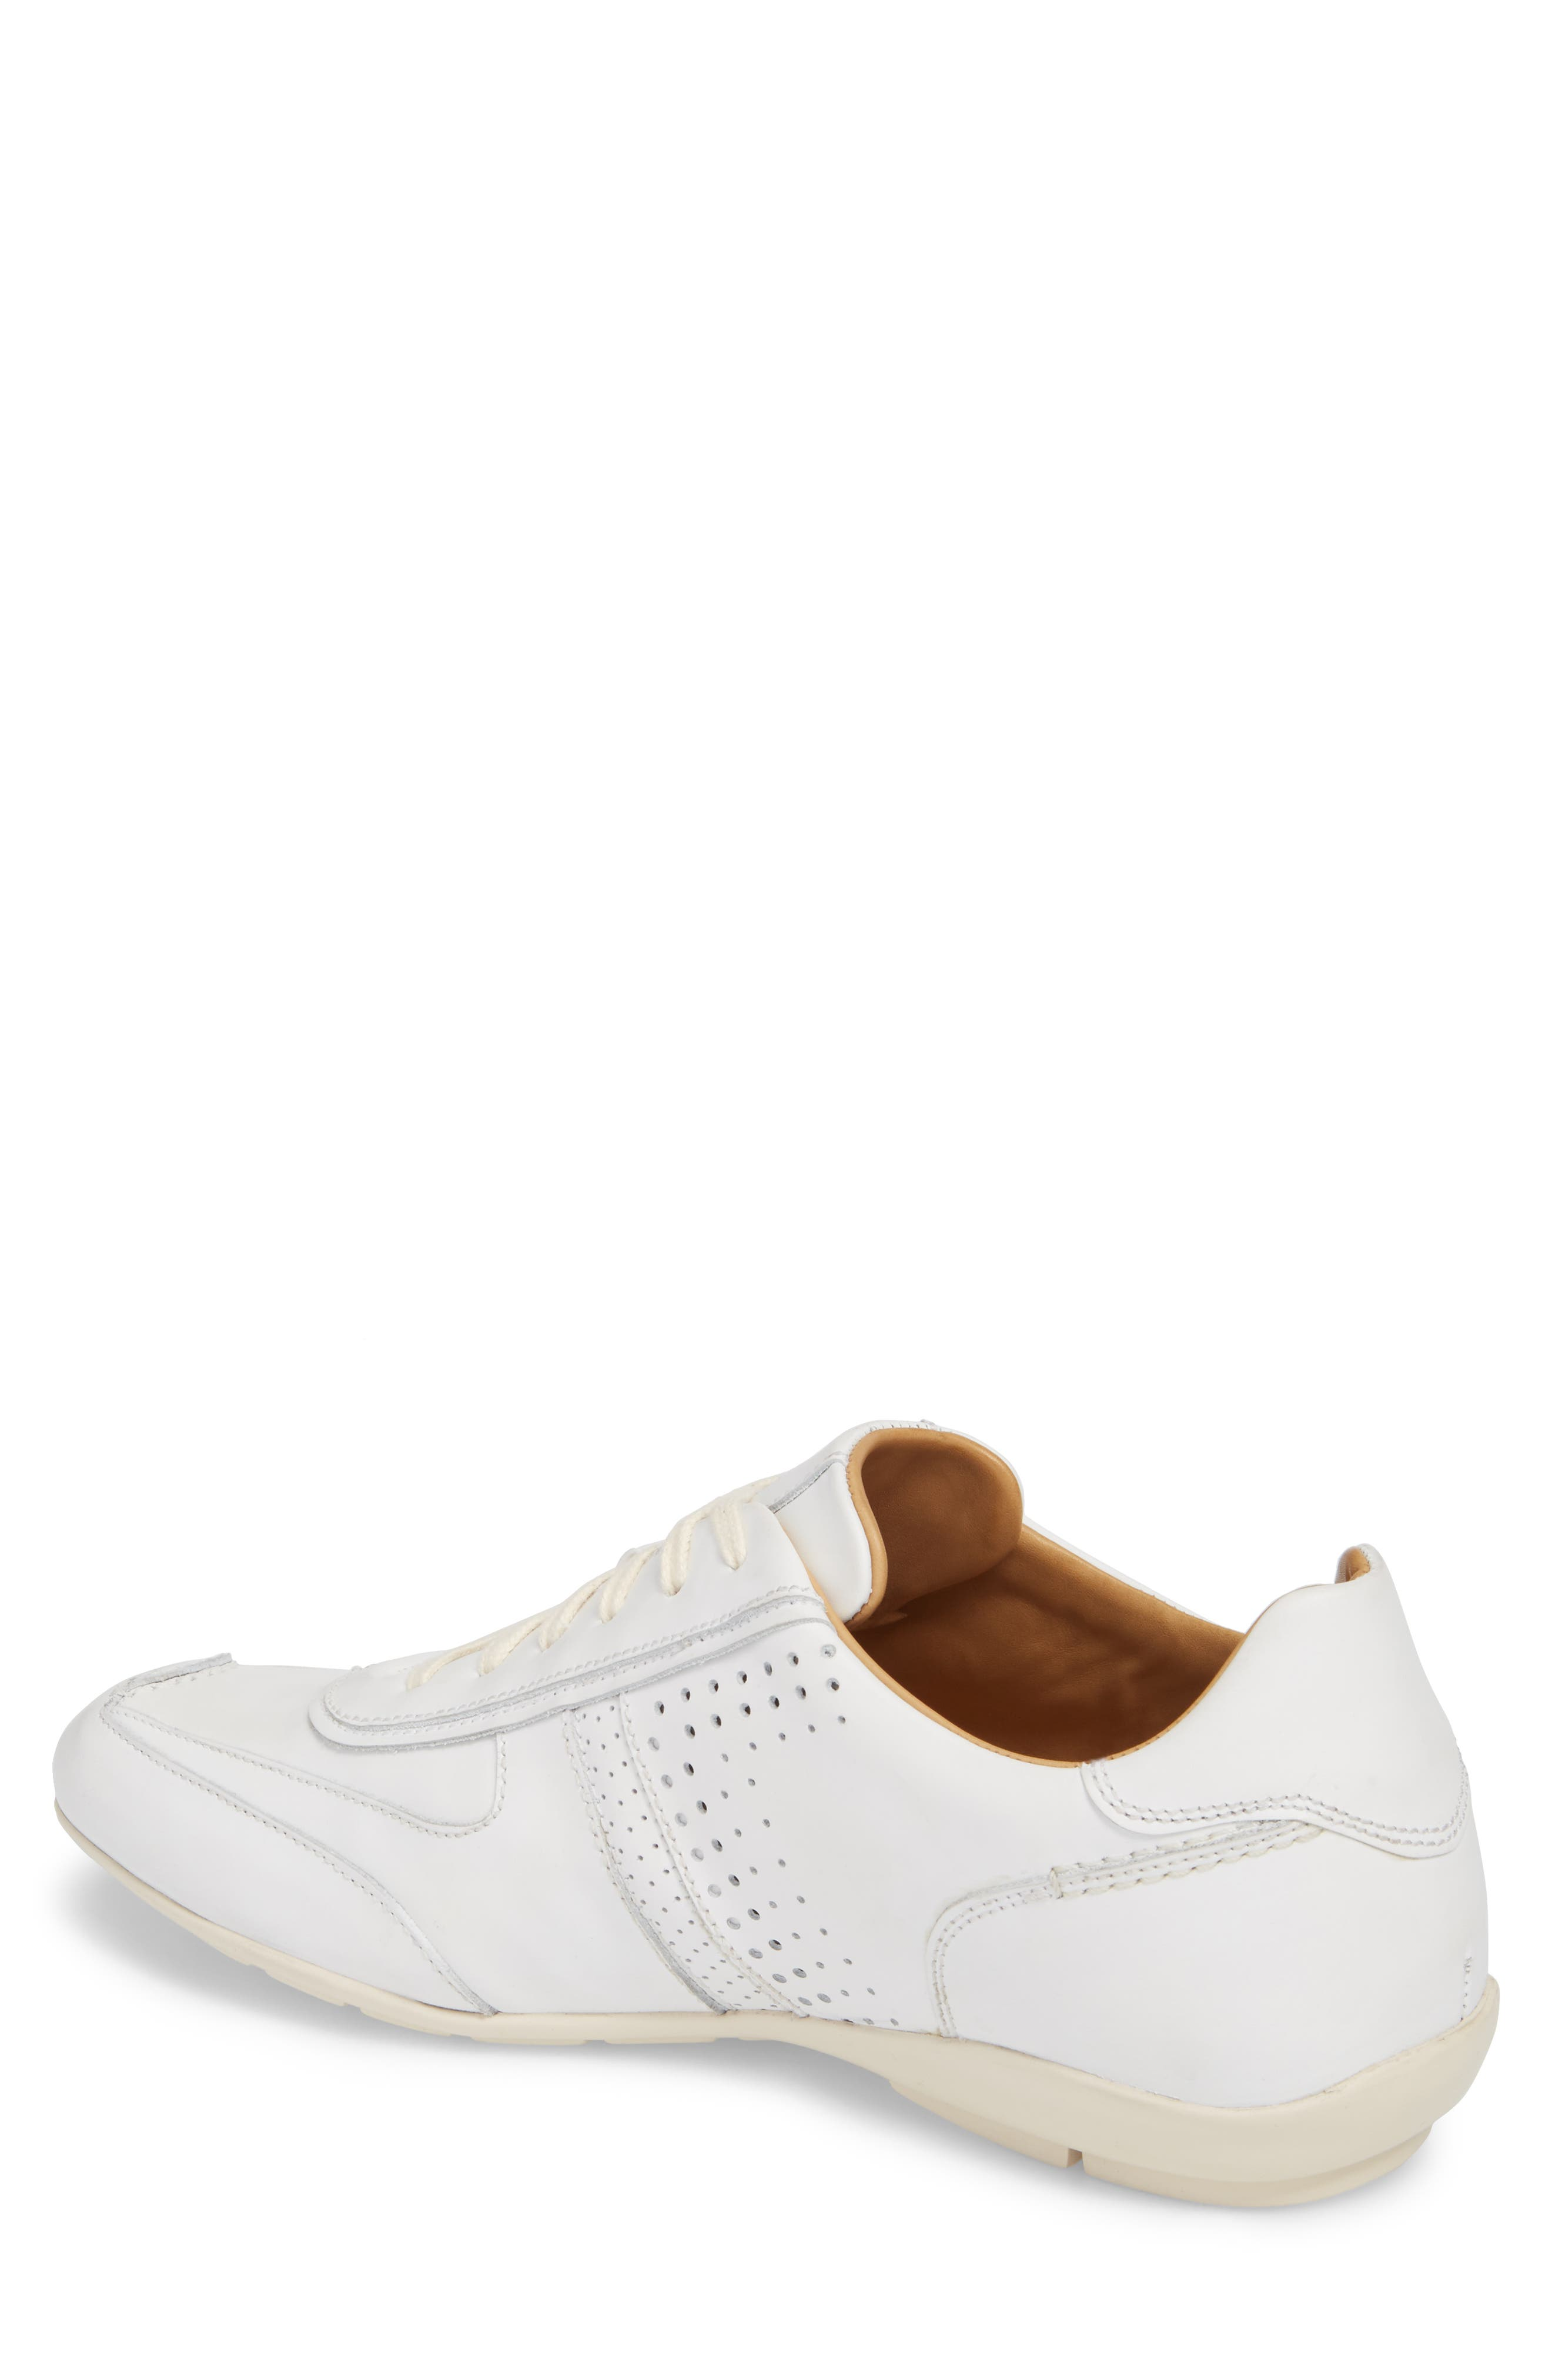 Lozano II Low Top Sneaker,                             Alternate thumbnail 2, color,                             White Leather